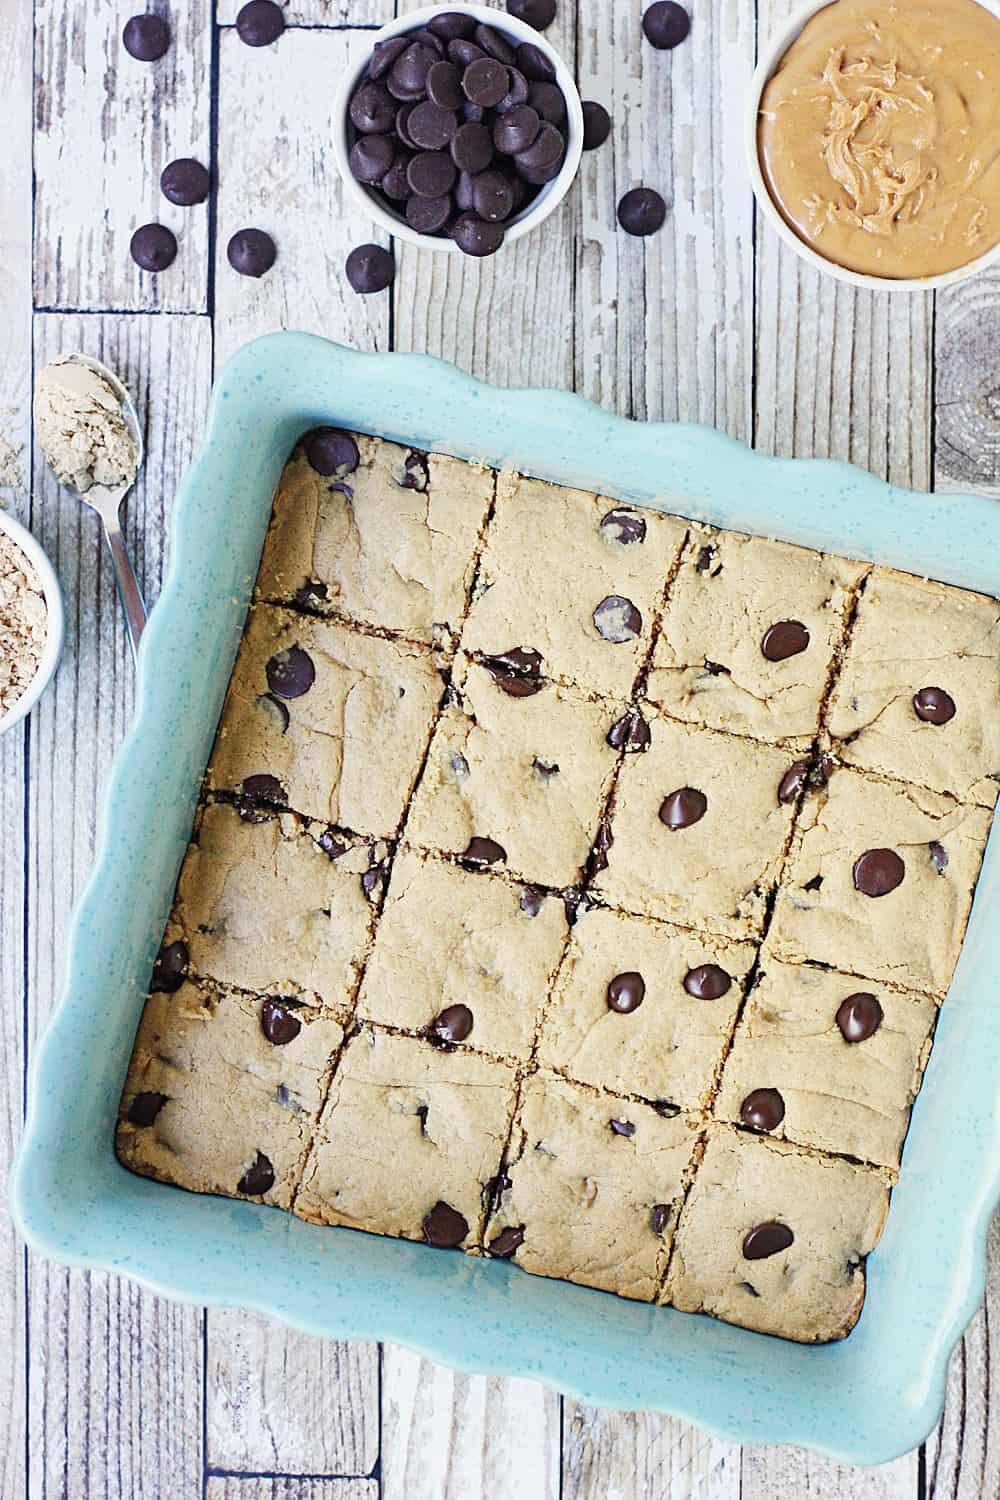 Healthy Peanut Butter Brownies with Dark Chocolate Chips -- These healthy peanut butter brownies are full of peanut butter flavor but not full of sugar and carbs. Dark chocolate chips make them even yummier! #healthy #healthyrecipe #lowcarb #brownies #healthybrownies #baking #healthybaking #halfscratched #peanutbutter #peanutbutterbrownies